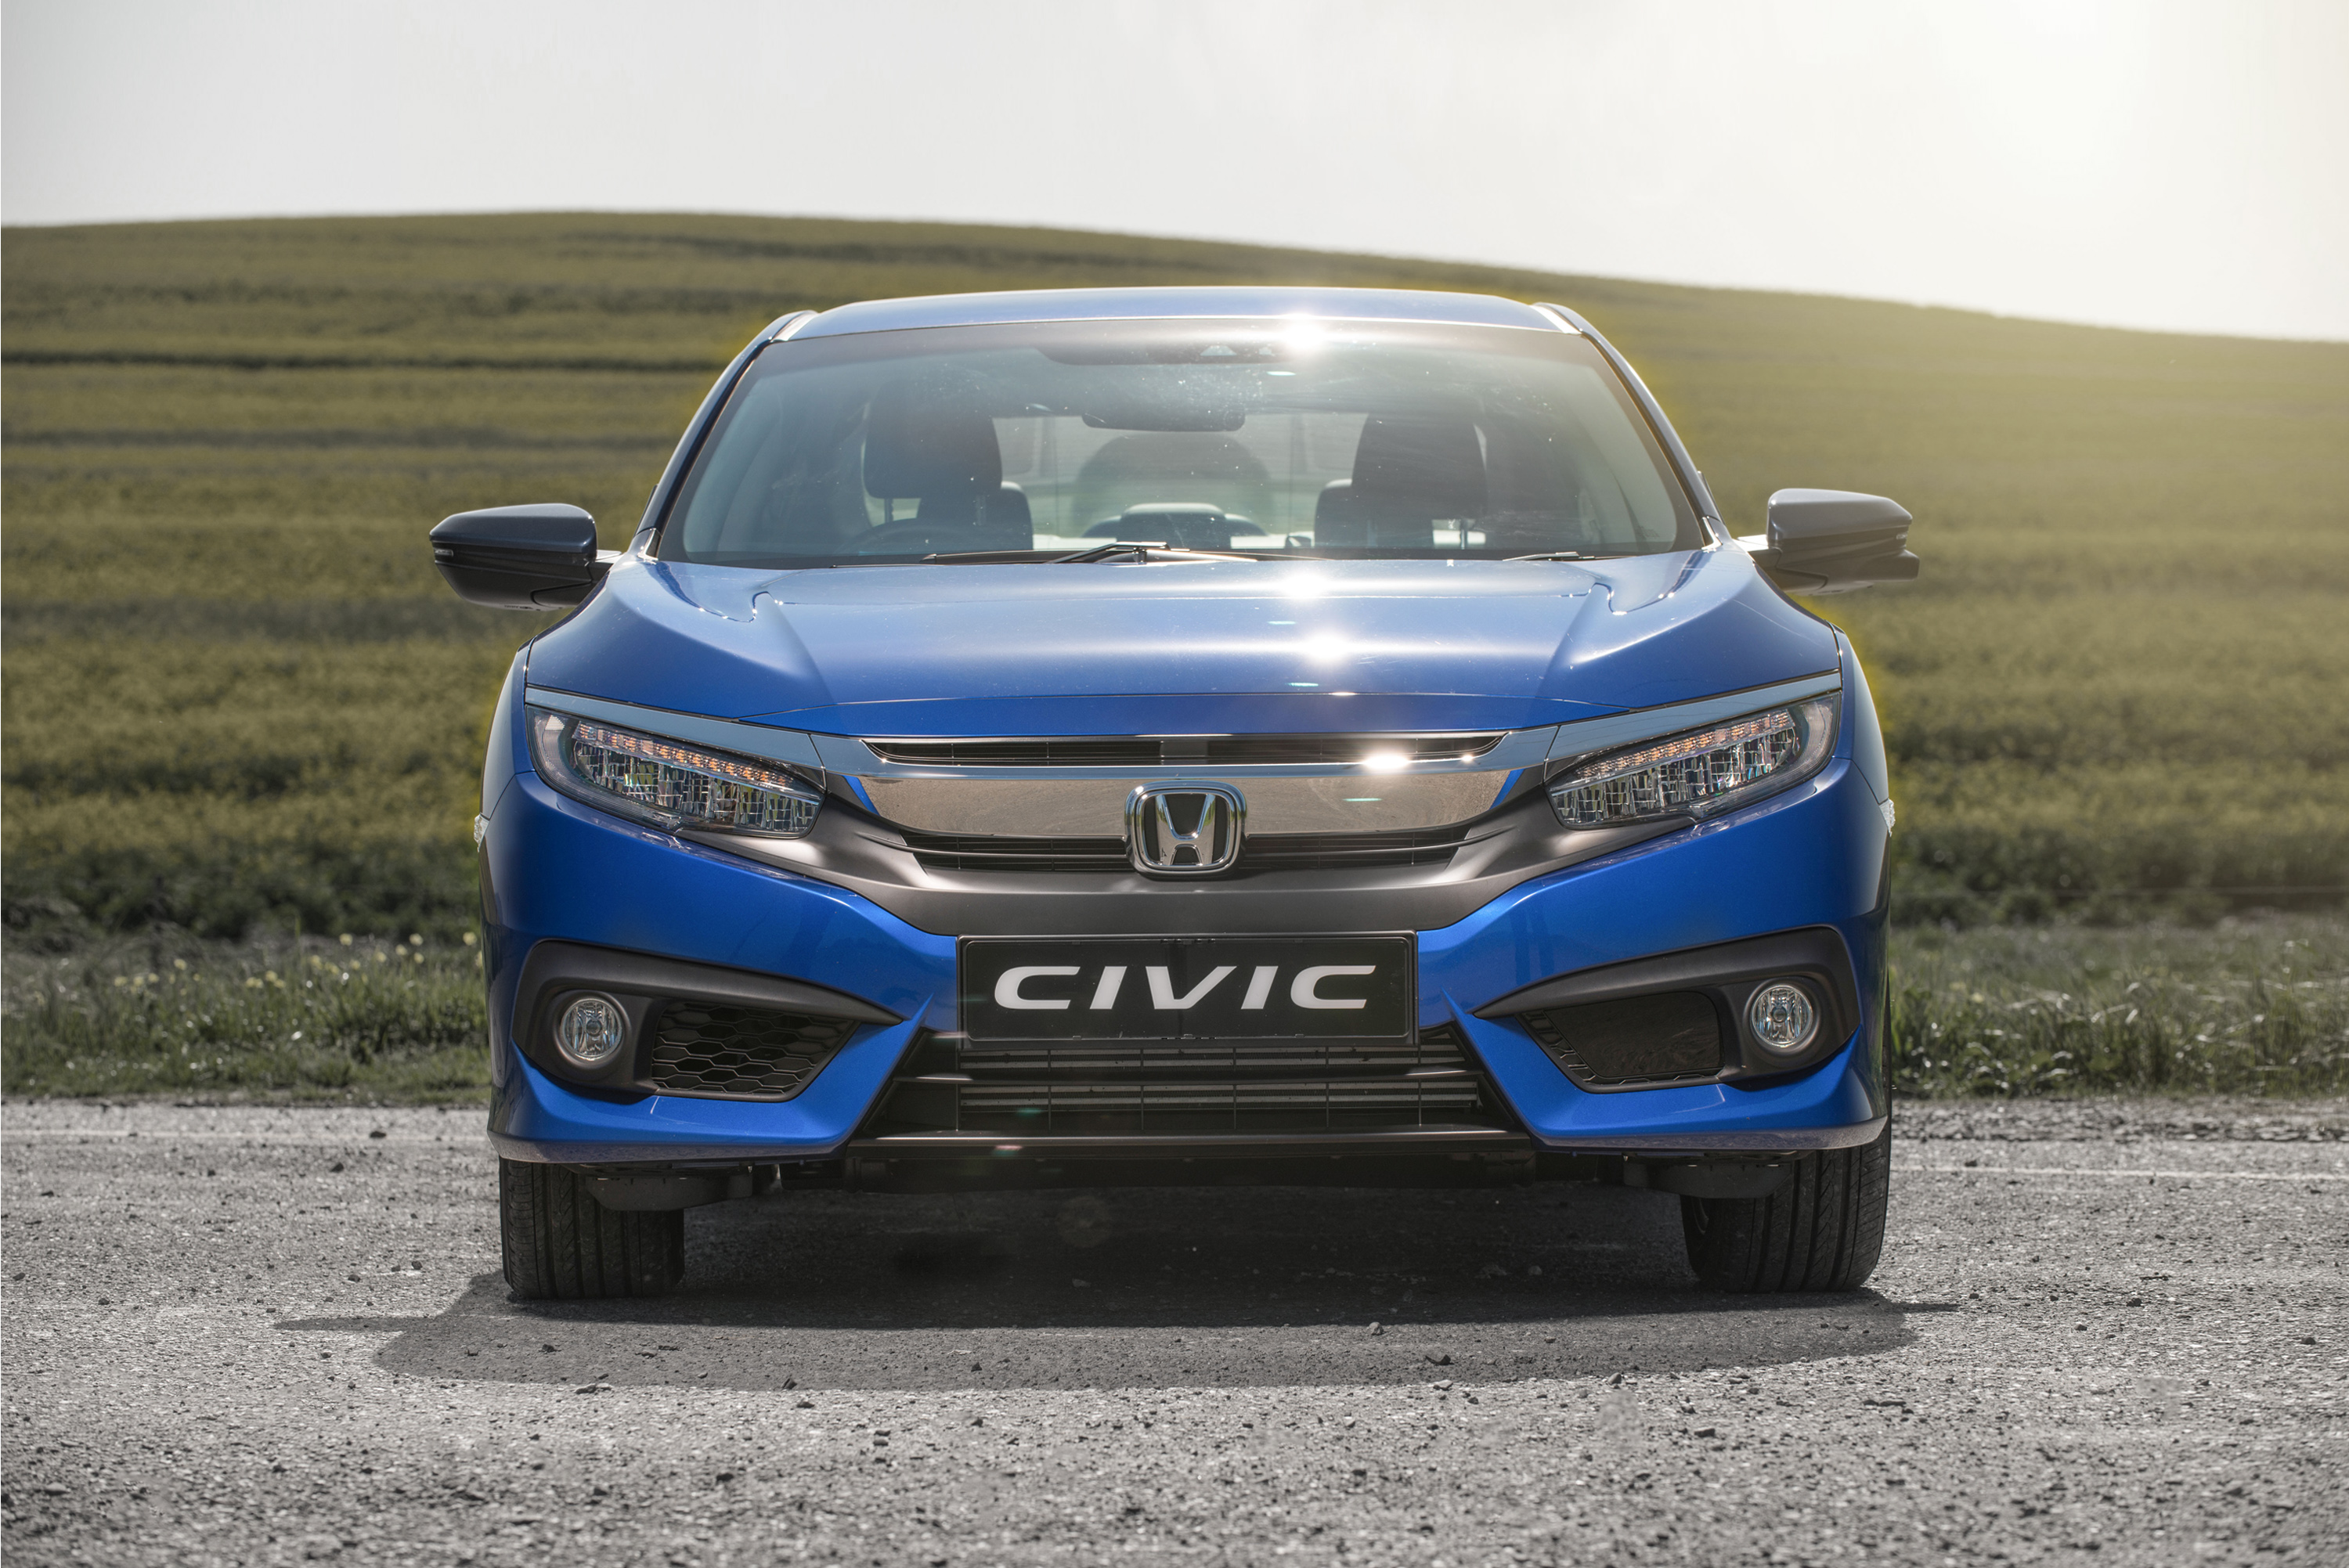 <p>Since it first broke cover in 1973, the Honda Civic has been a staple of the Honda Motor Company's model line-up. </p>